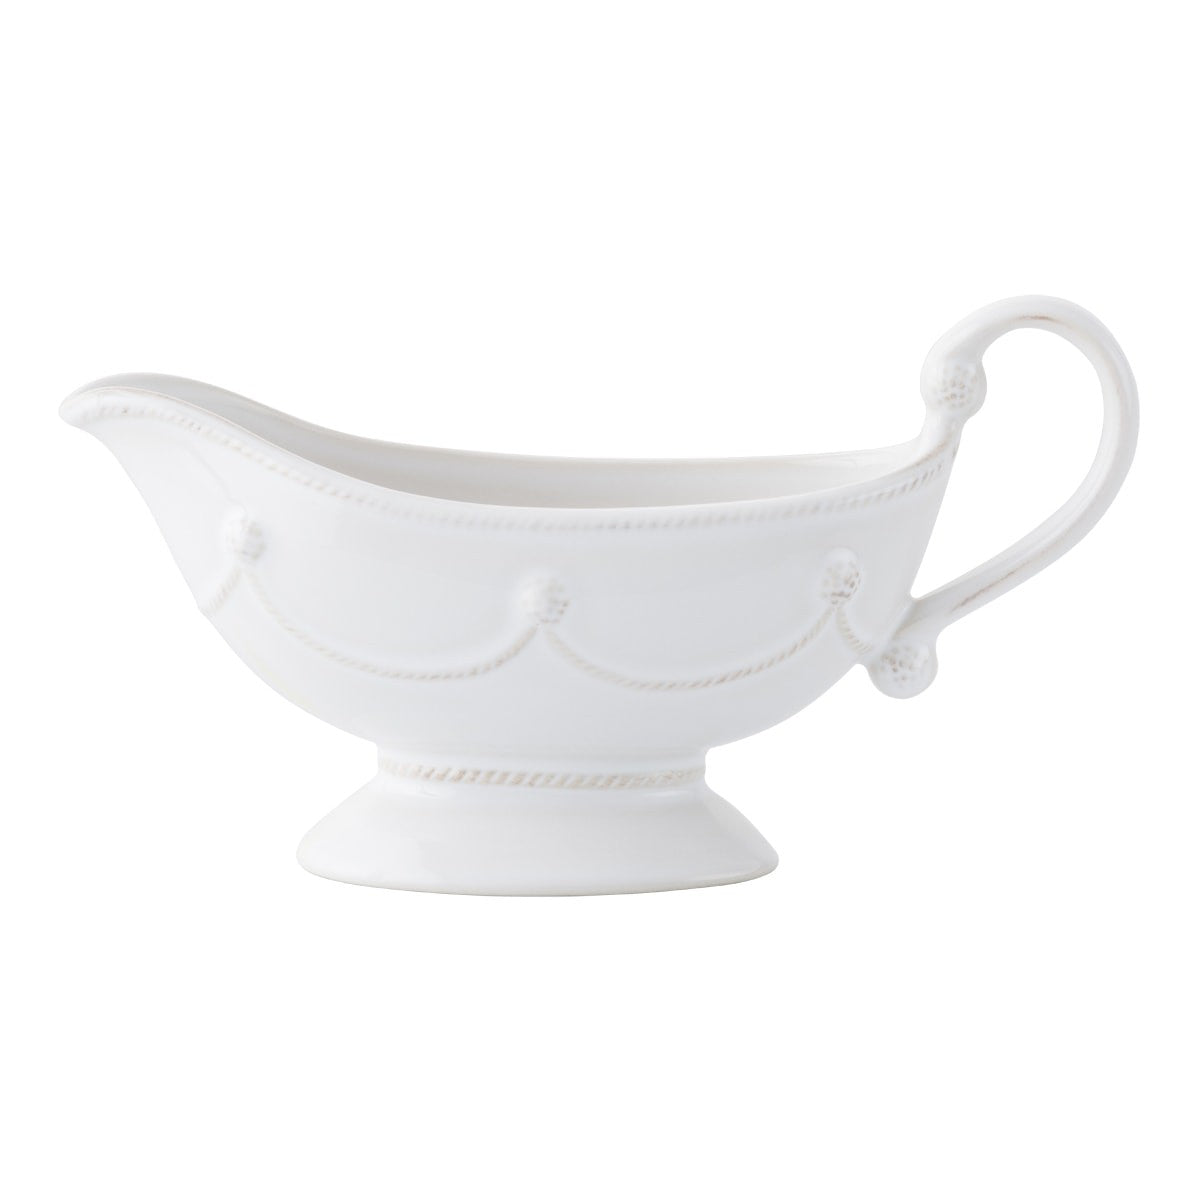 Juliska - Berry & Thread Whitewash Sauce Boat